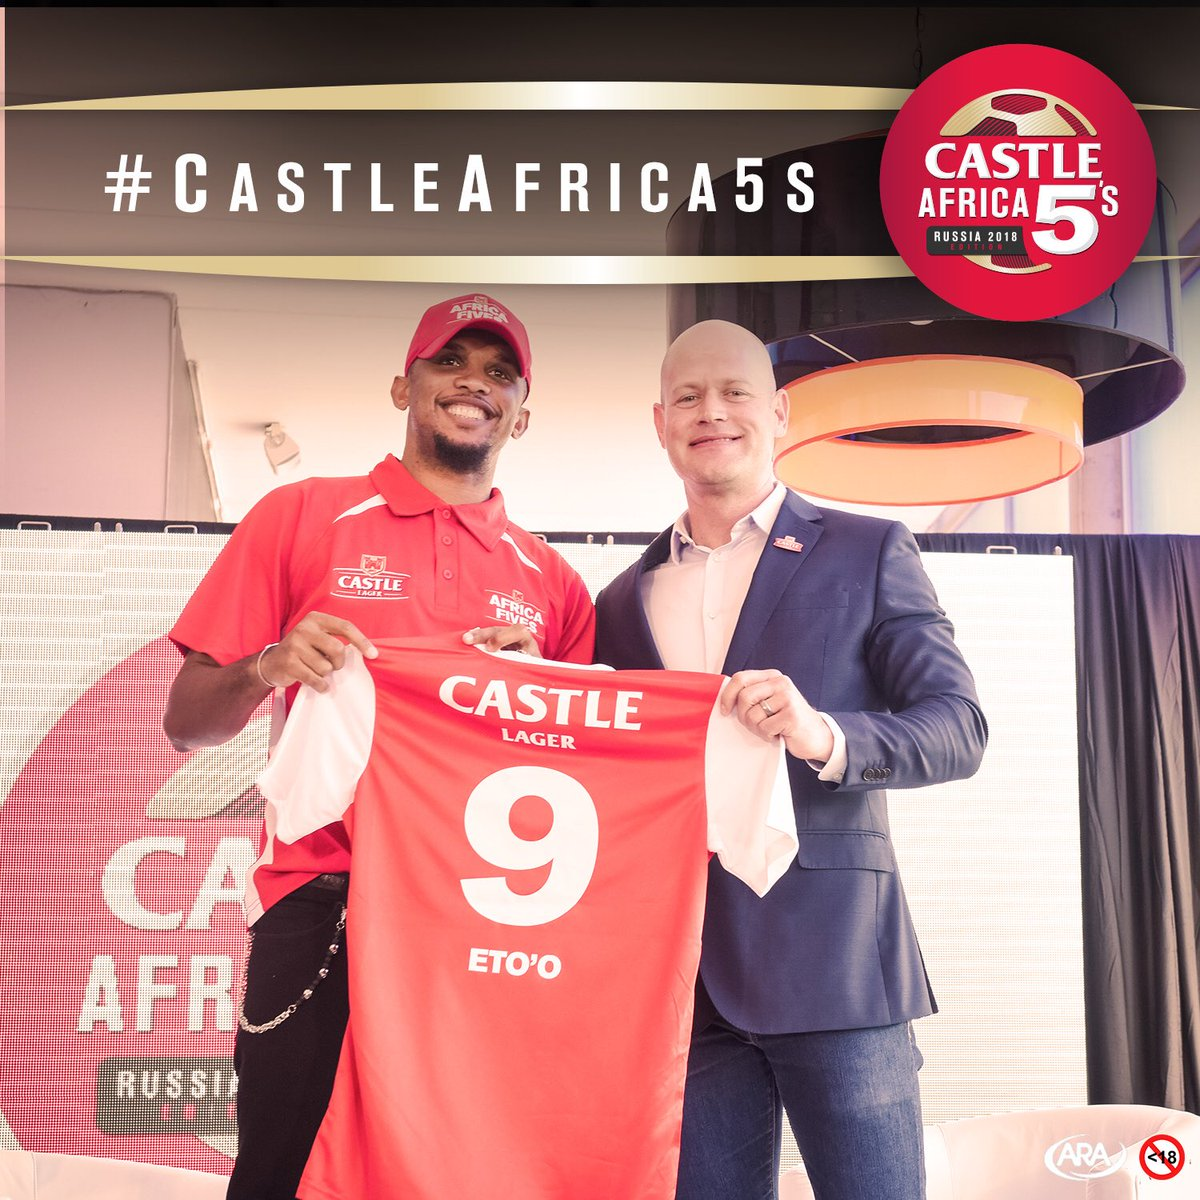 Today legends come together for the official #CastleAfrica5s launch. We are proud to announce @setoo9 as our ambassador!